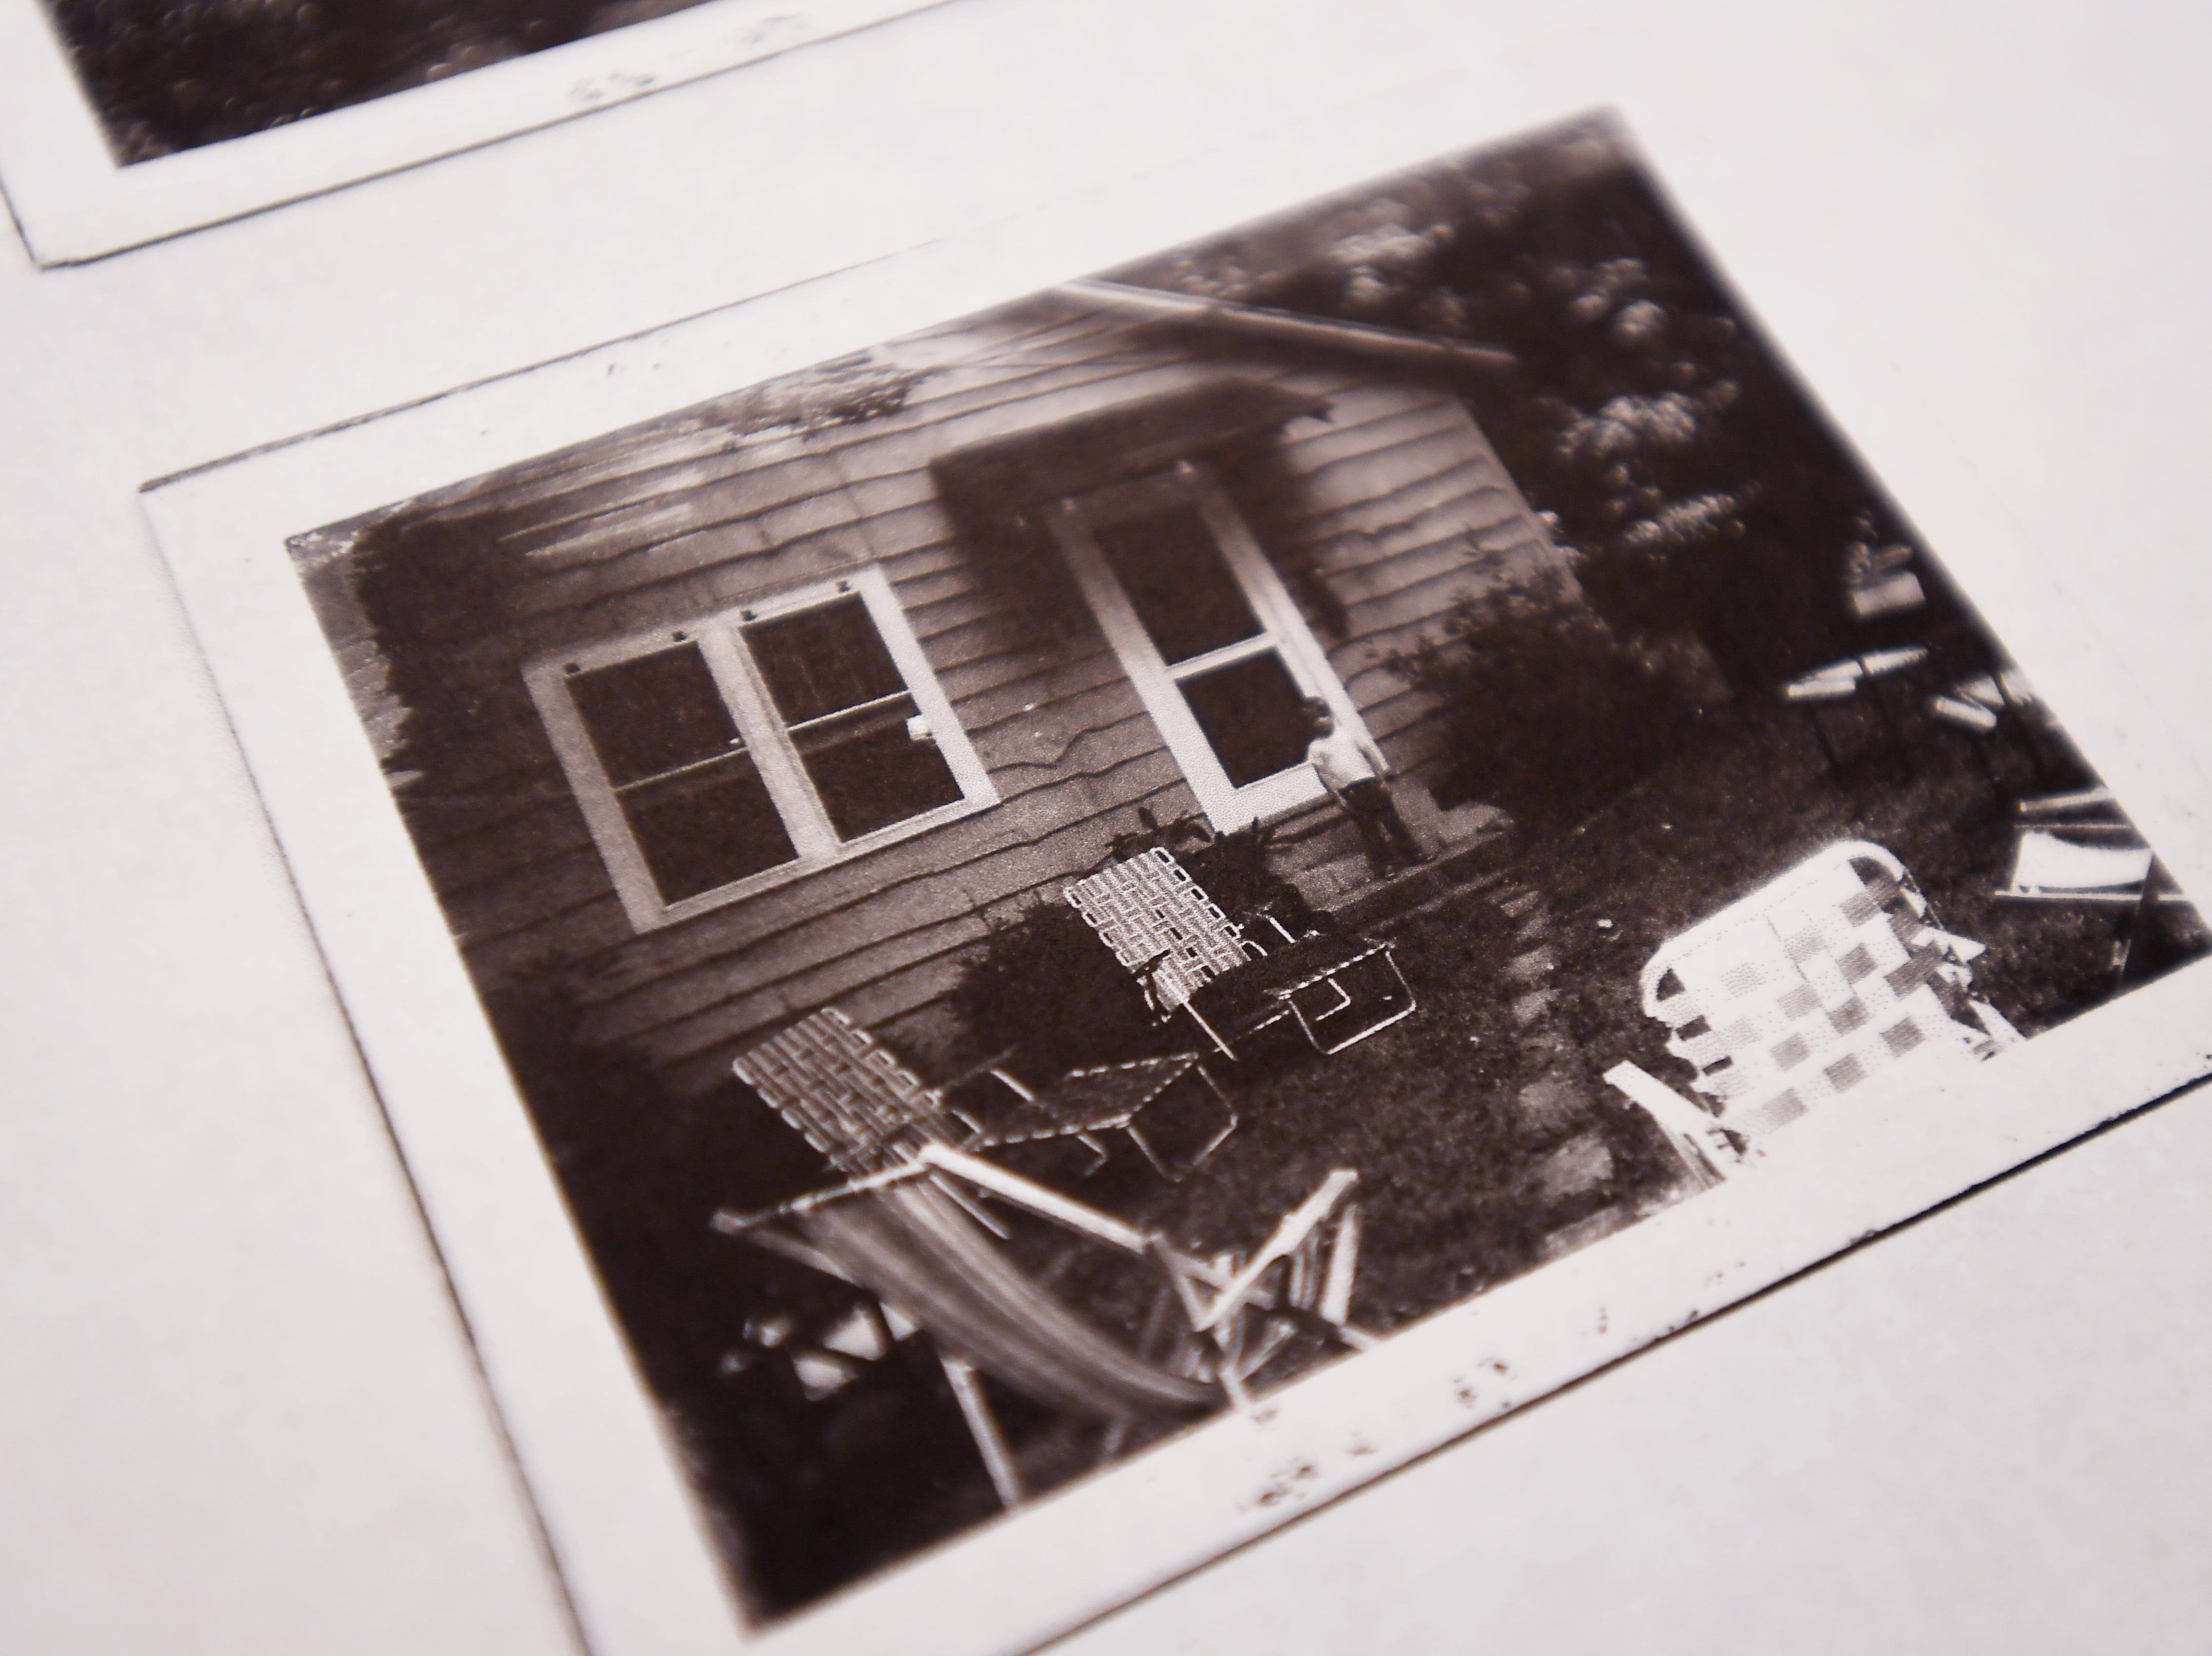 An old photograph of Rhonda Corley's cabin.